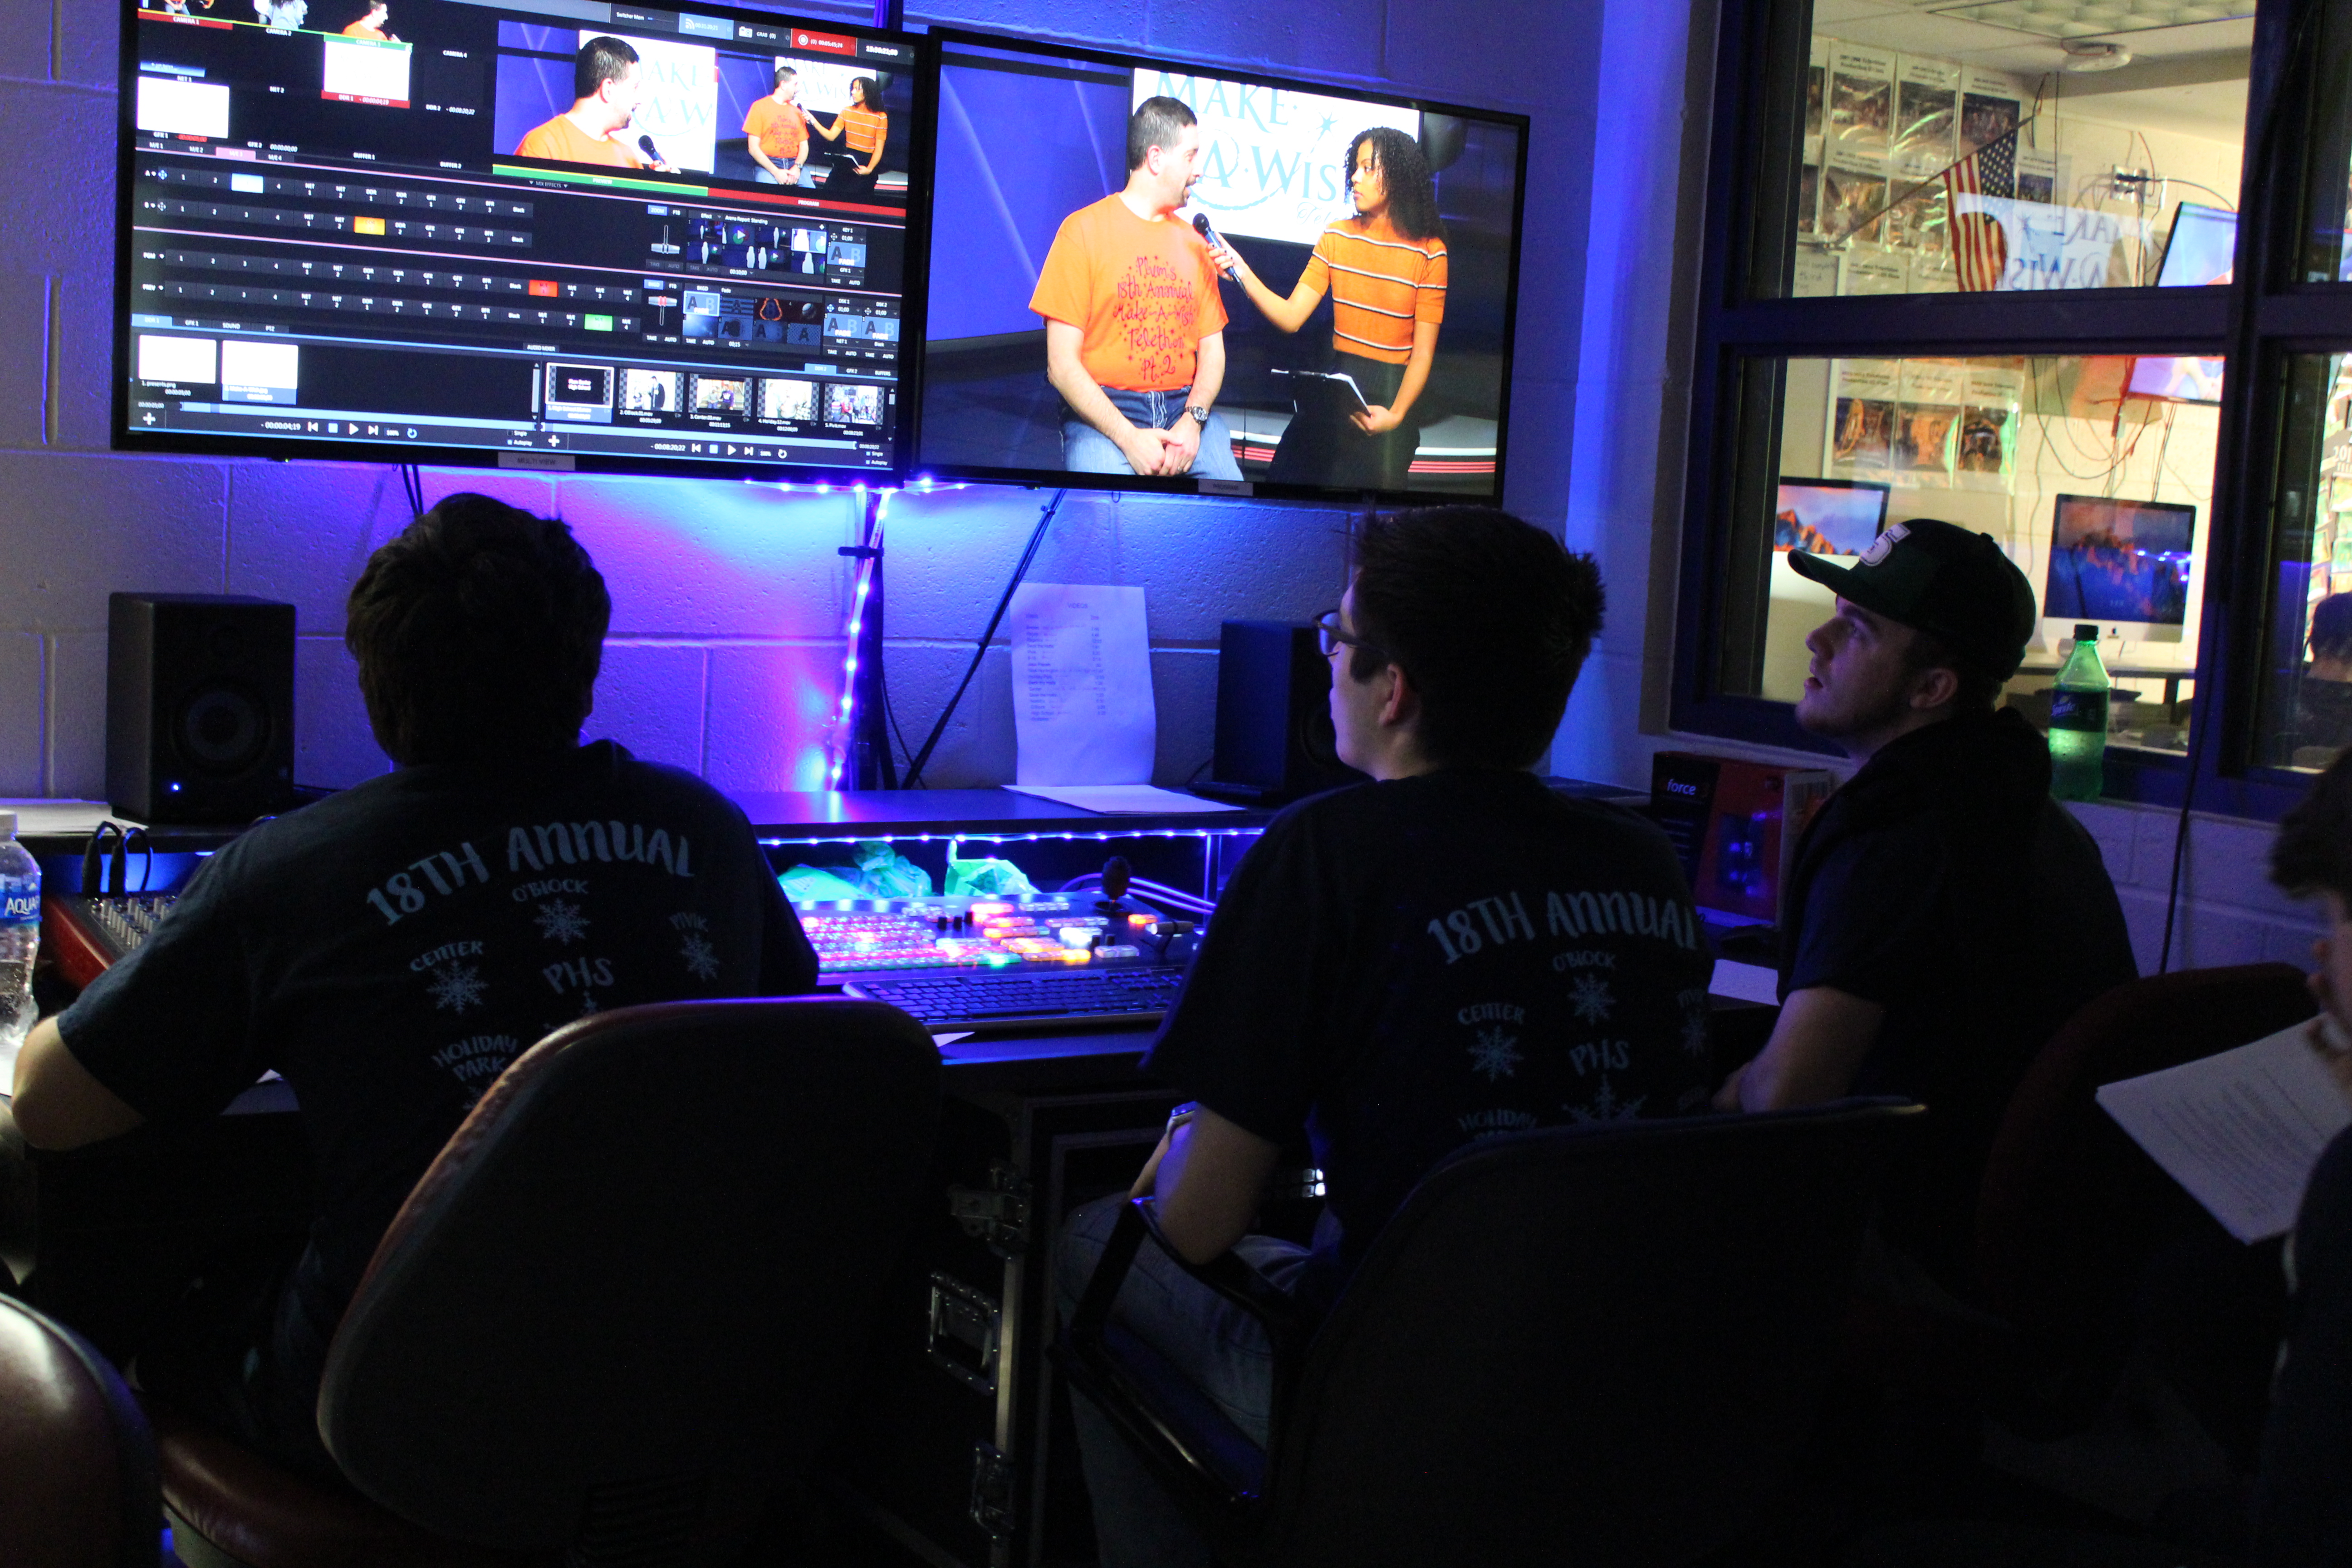 Multi-Camera Training Provides Return On Simulation